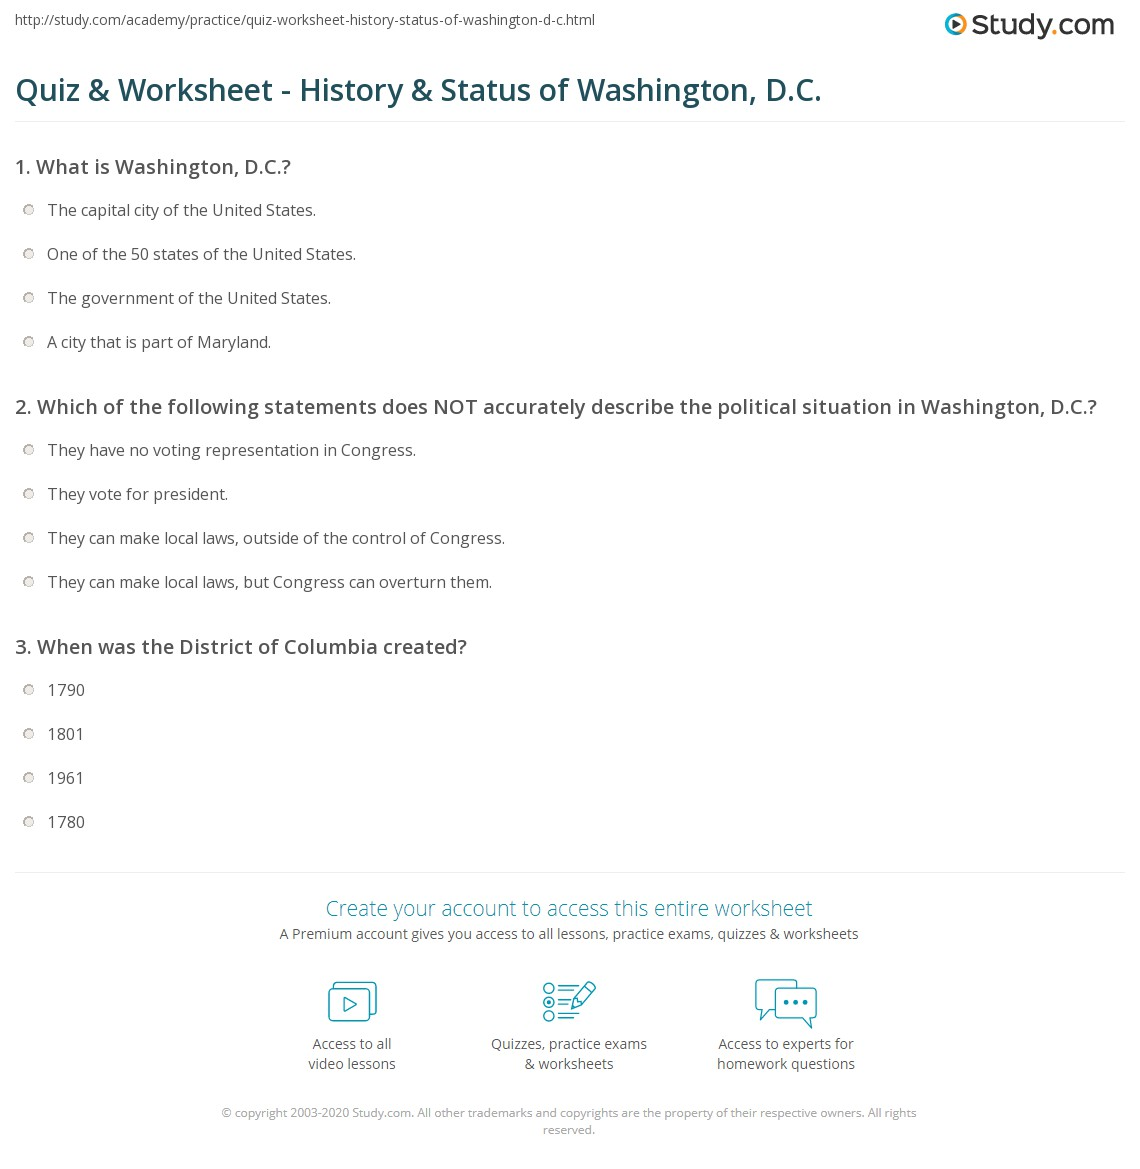 worksheet Child Support Worksheet Washington quiz worksheet history status of washington d c study com print worksheet